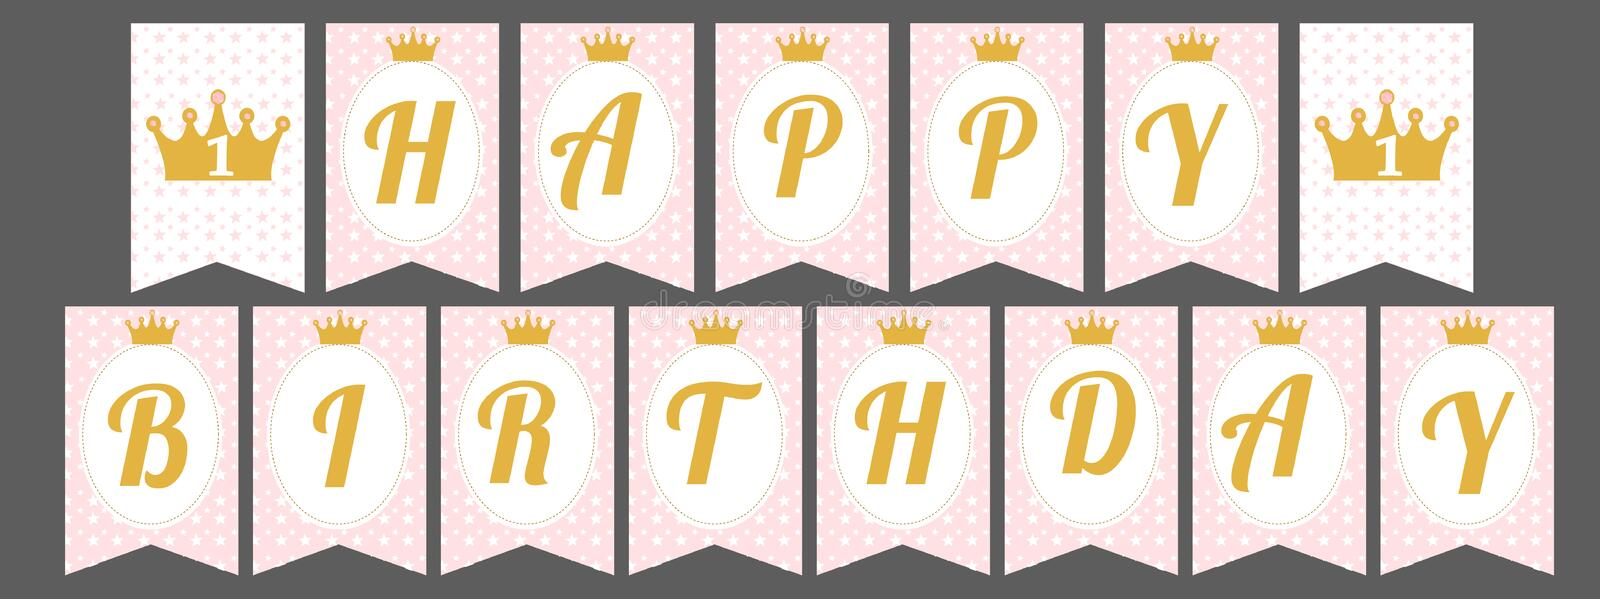 Cute pennant banner as flags with letters Happy Birthday in princess style. vector illustration